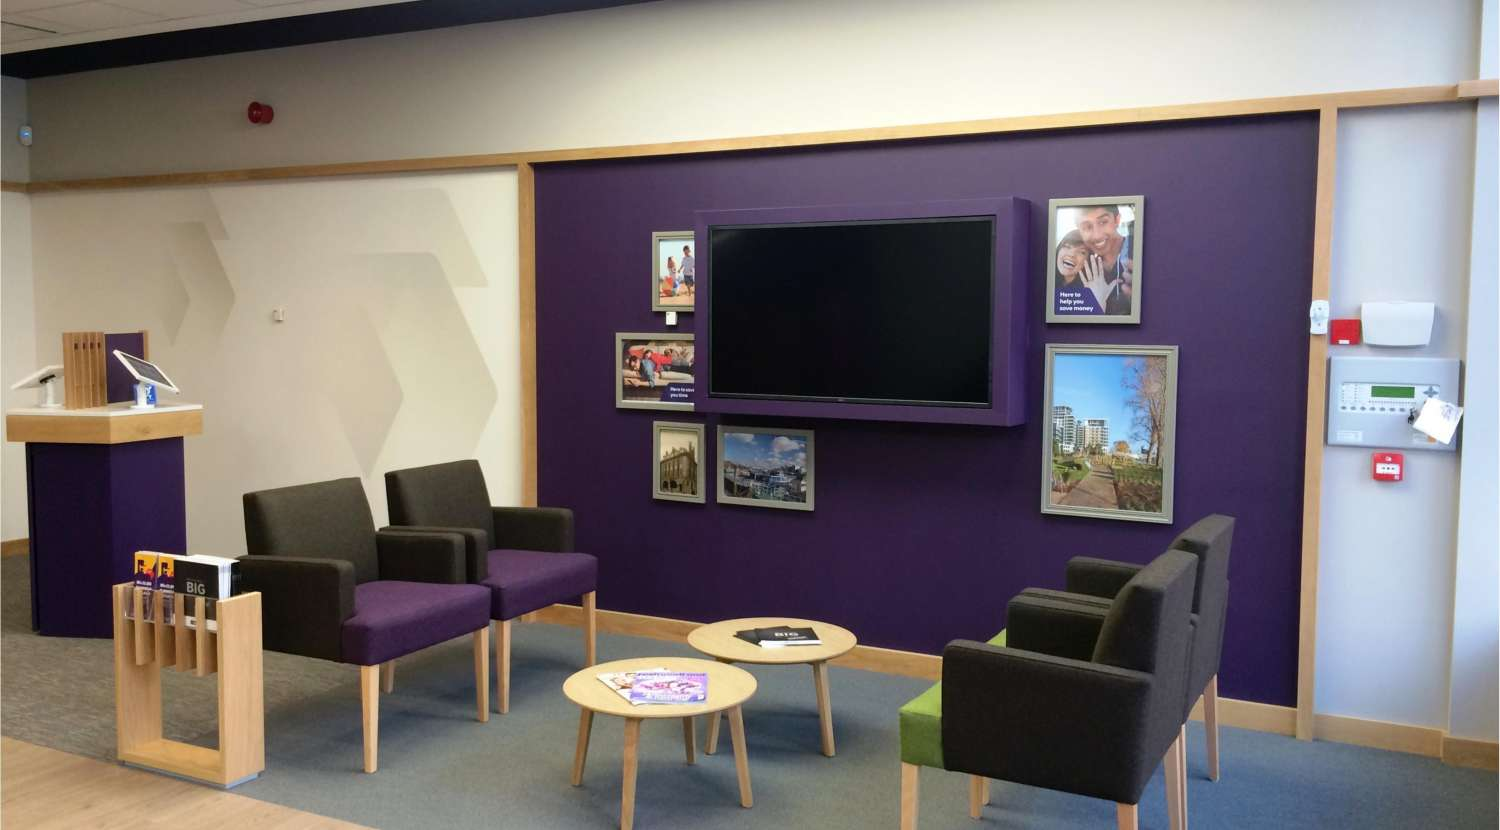 Television in client seating area